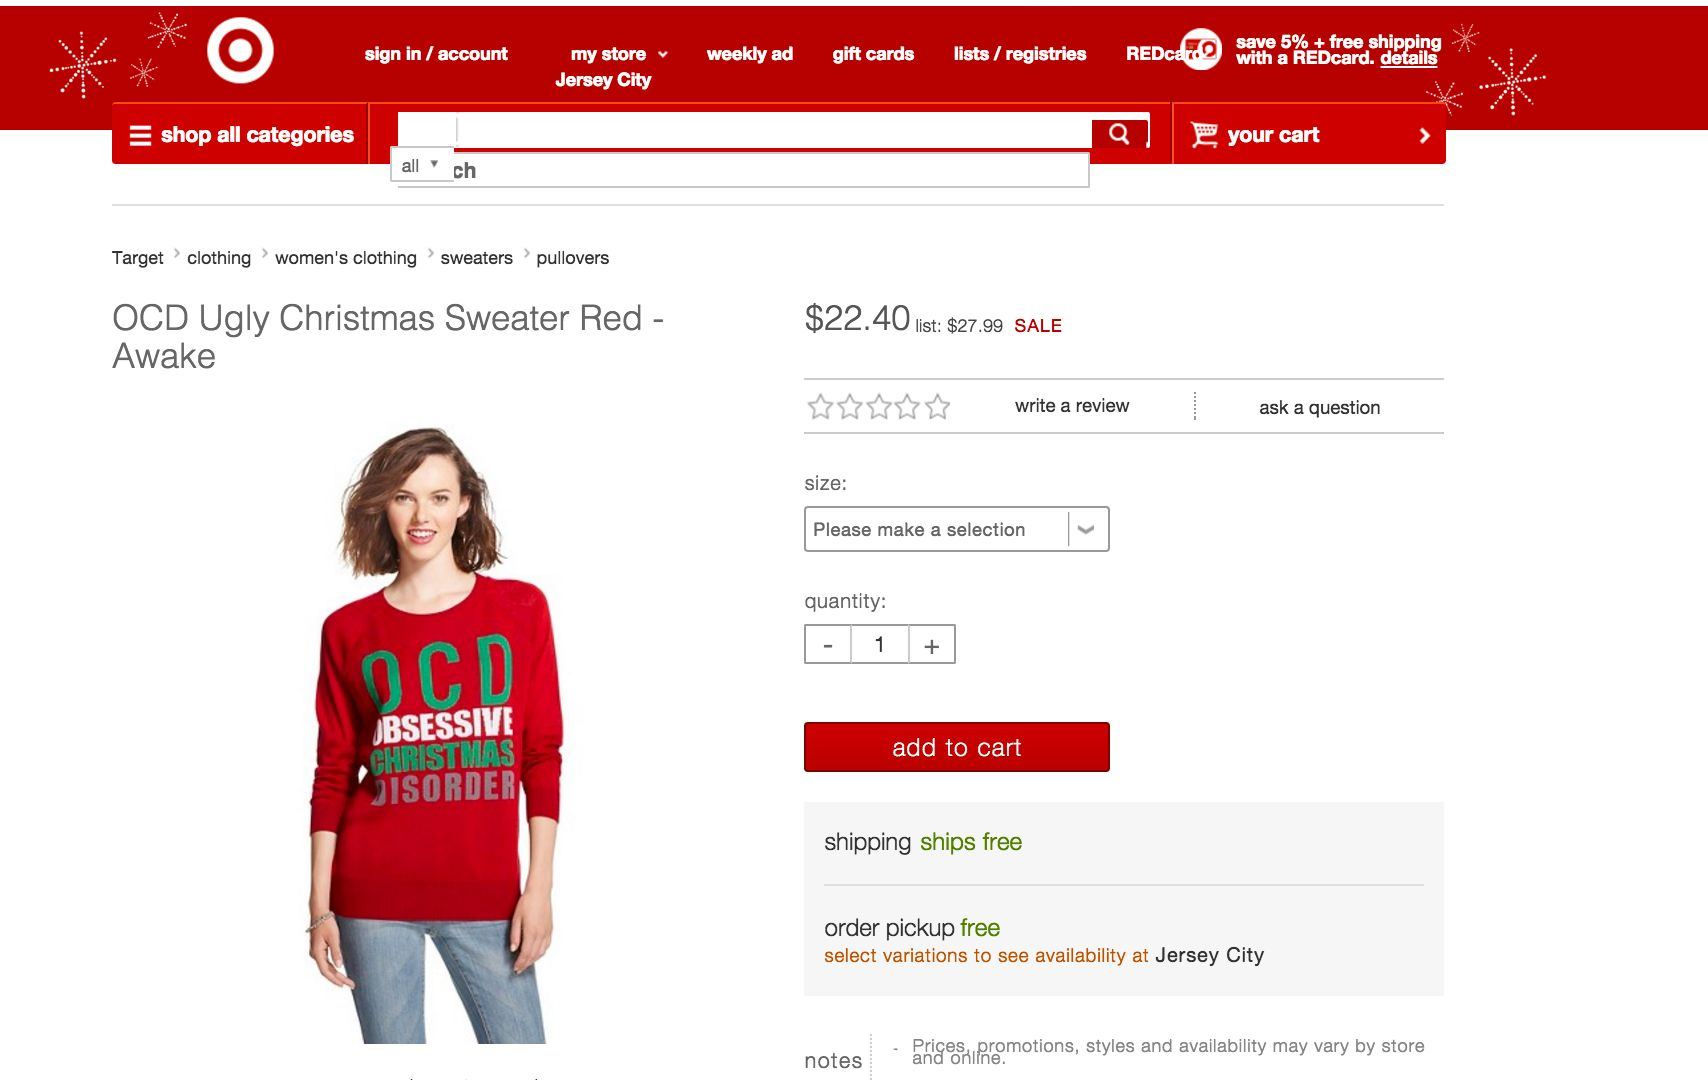 Target Accused Of Making Light Of Mental Illness With 'Obsessive ...